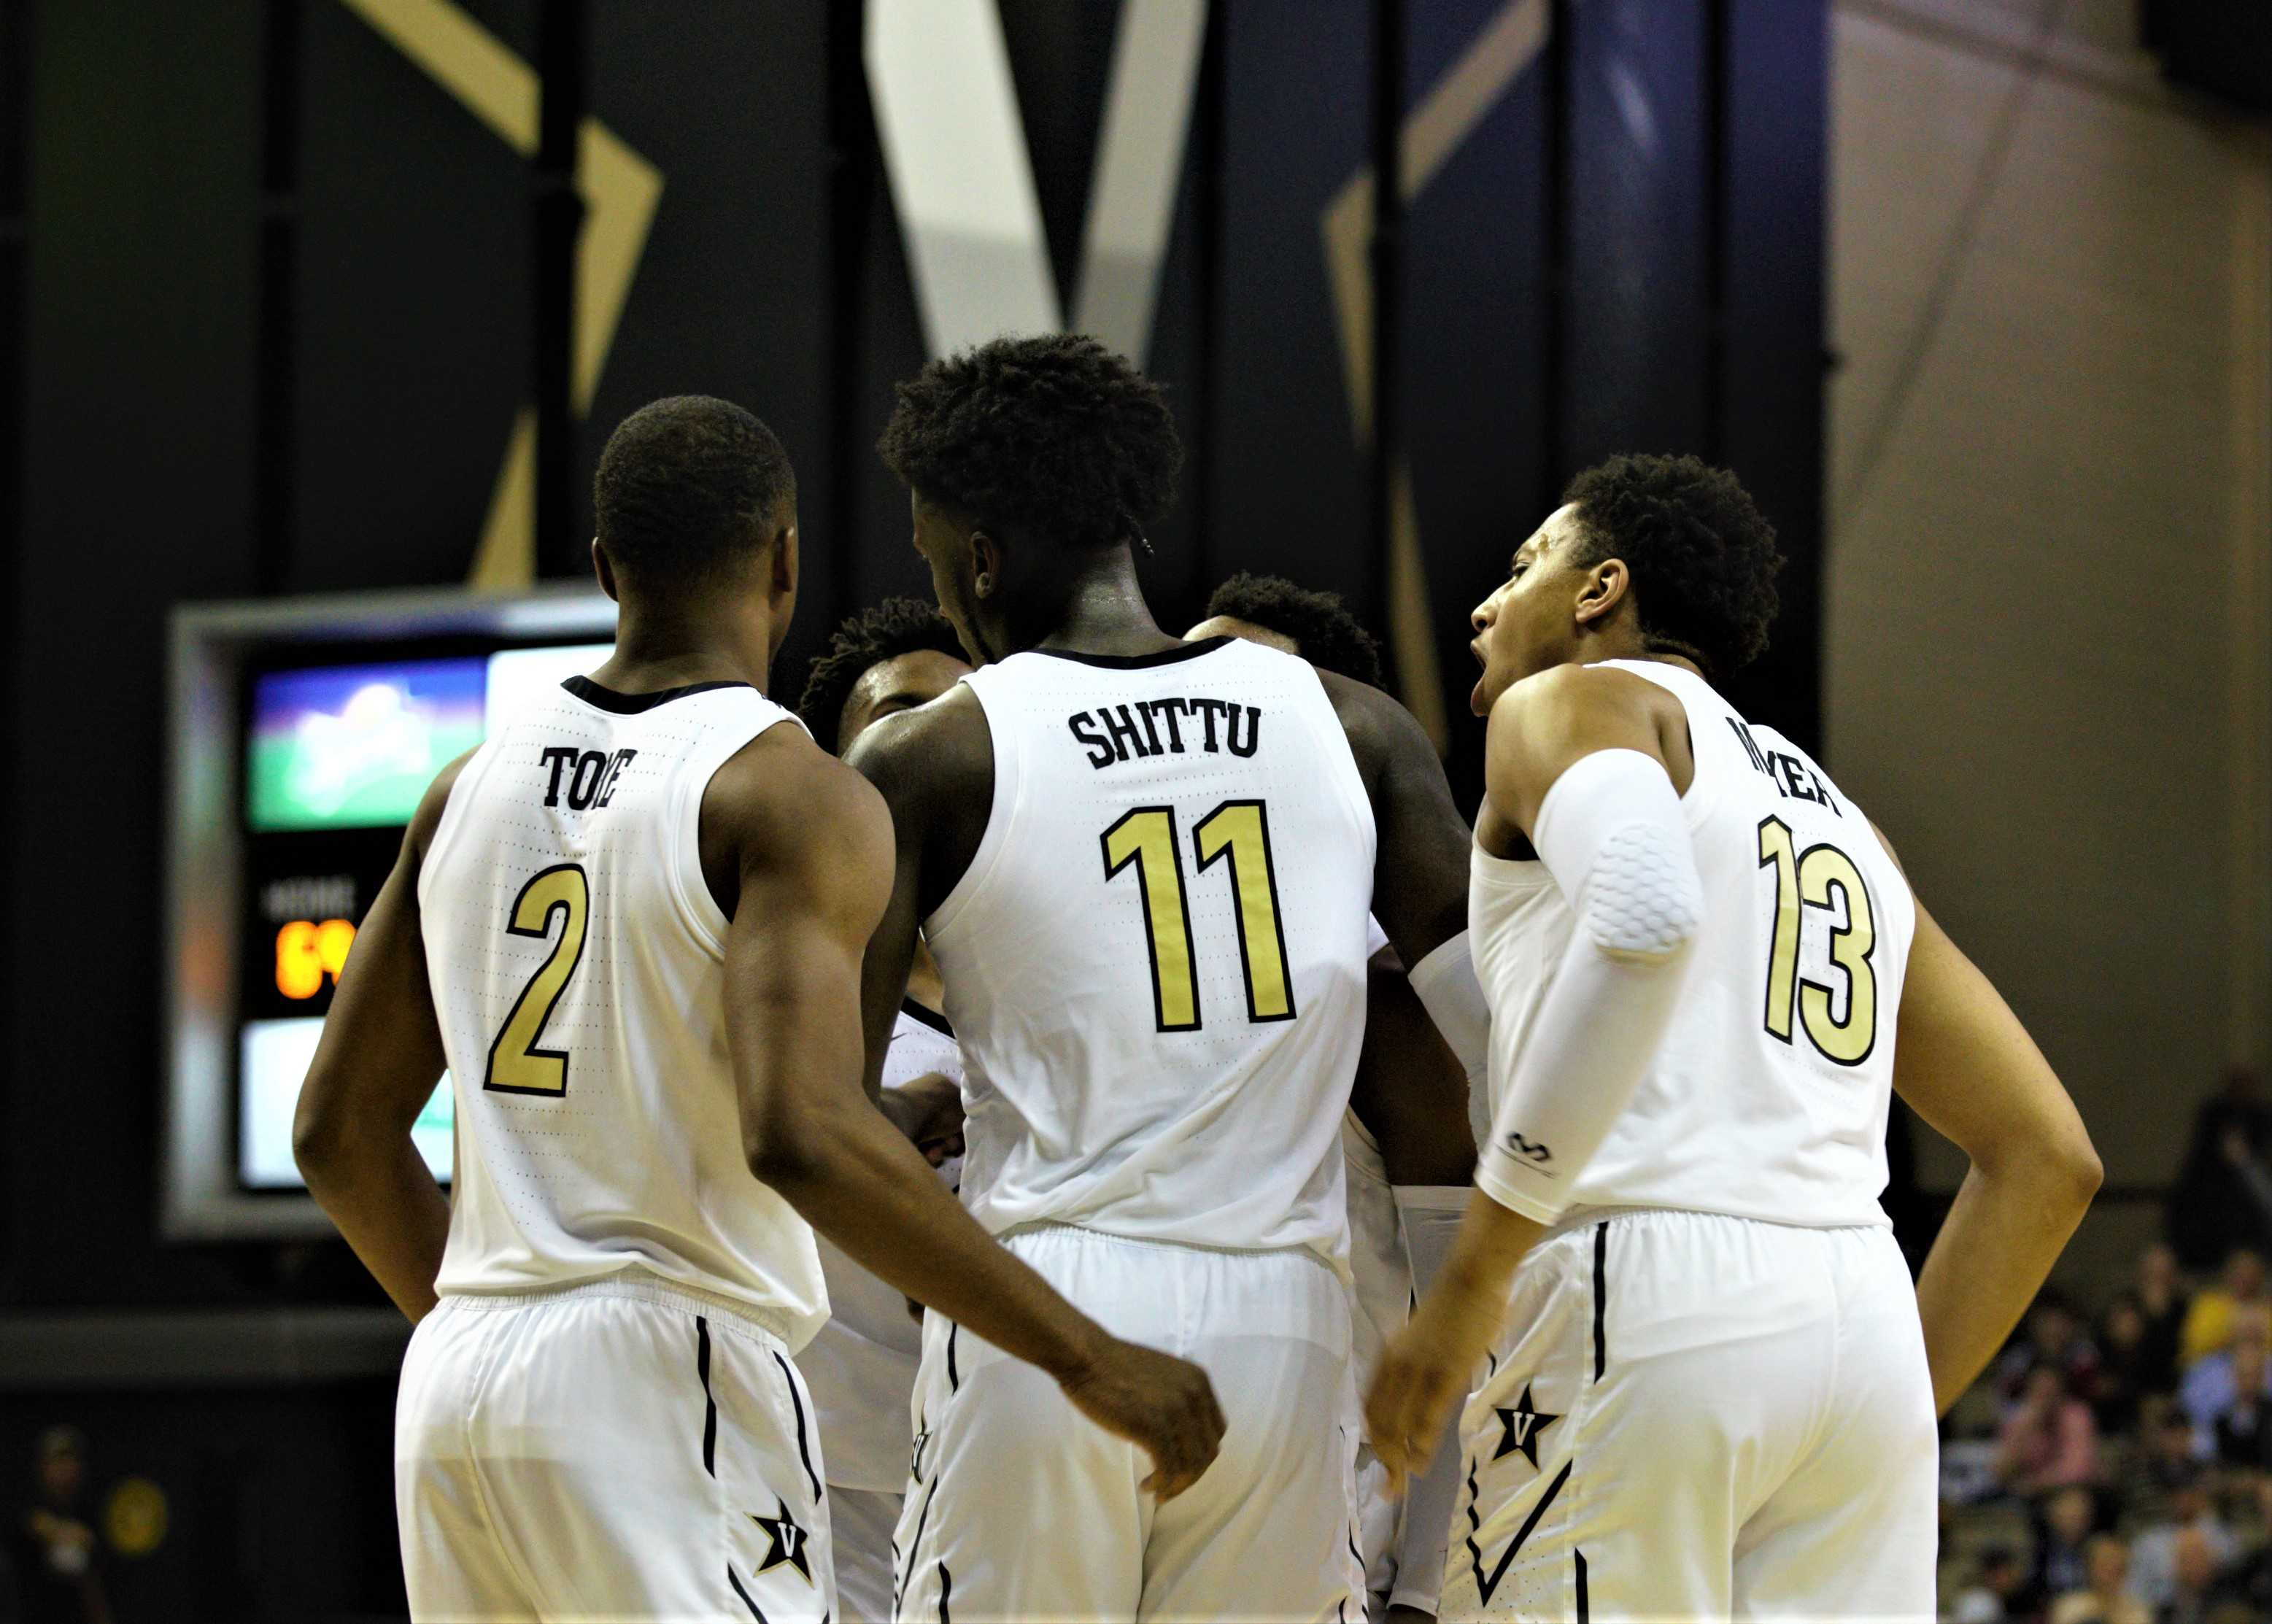 Vanderbilt dominates Savannah State 120-85 in first full game without Garland